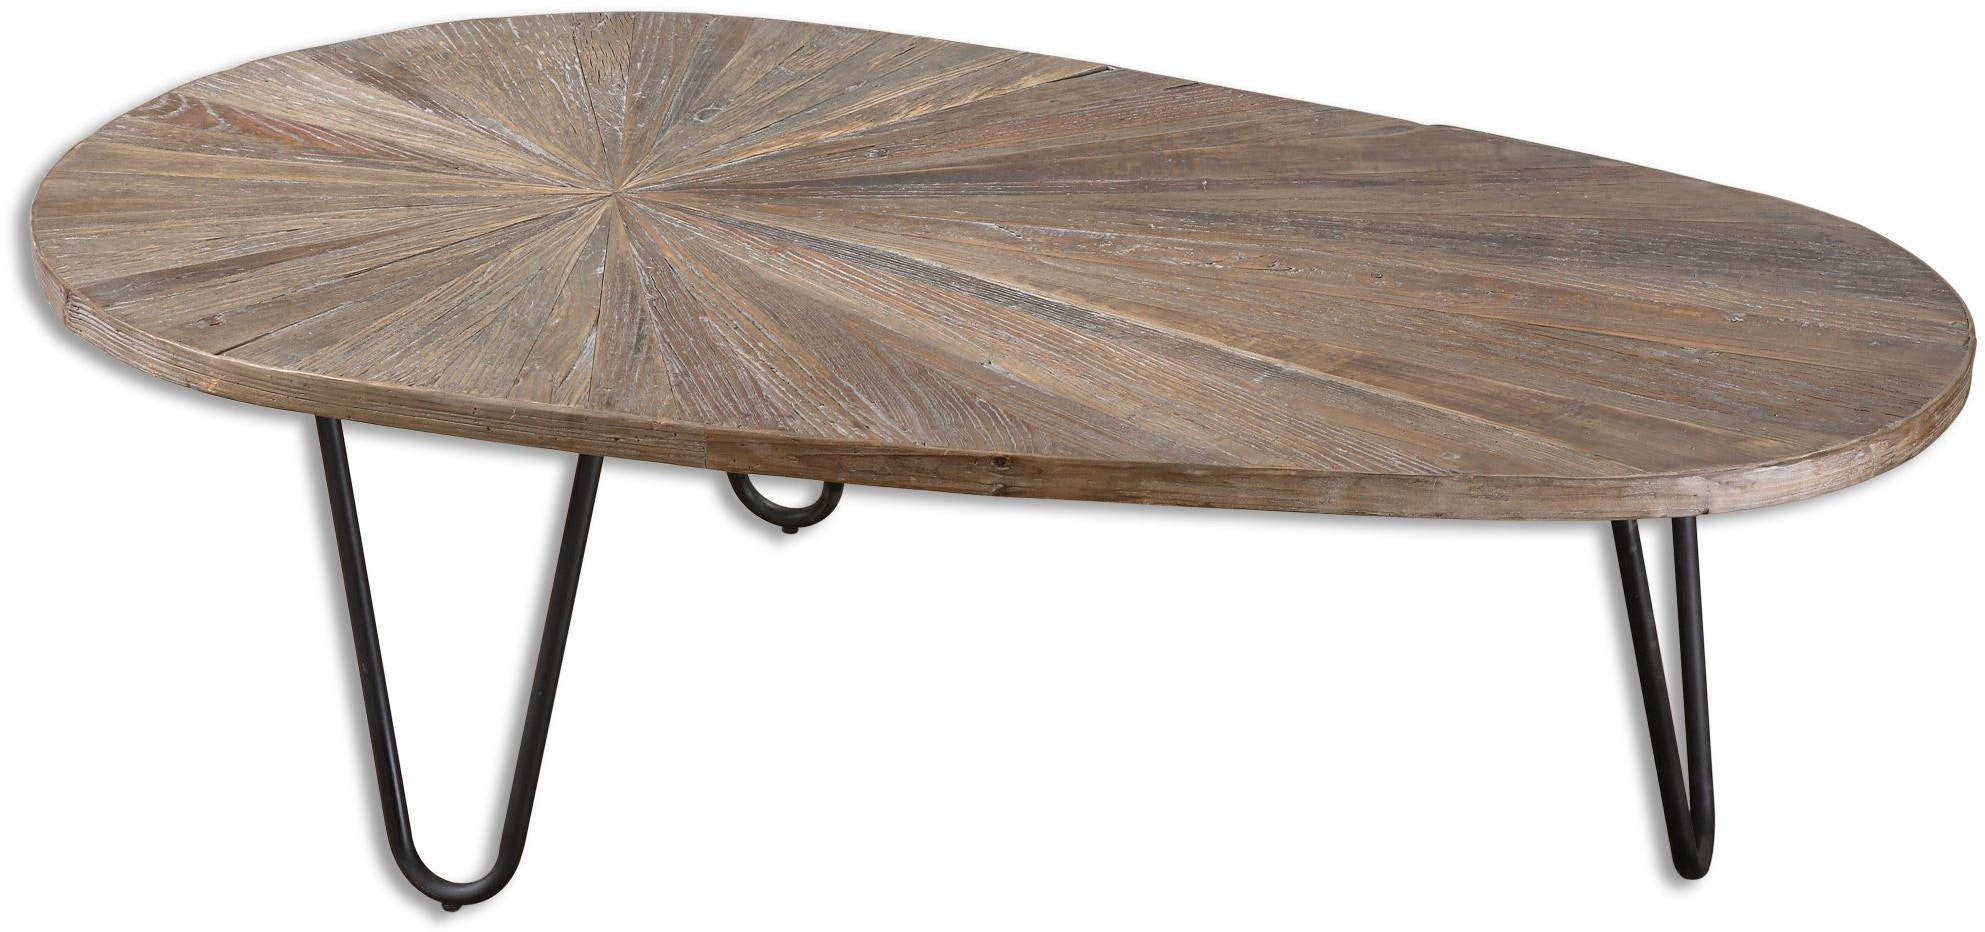 24459 living room uttermost leveni wooden coffee table uttermost leveni wooden coffee table 24459 geotapseo Images